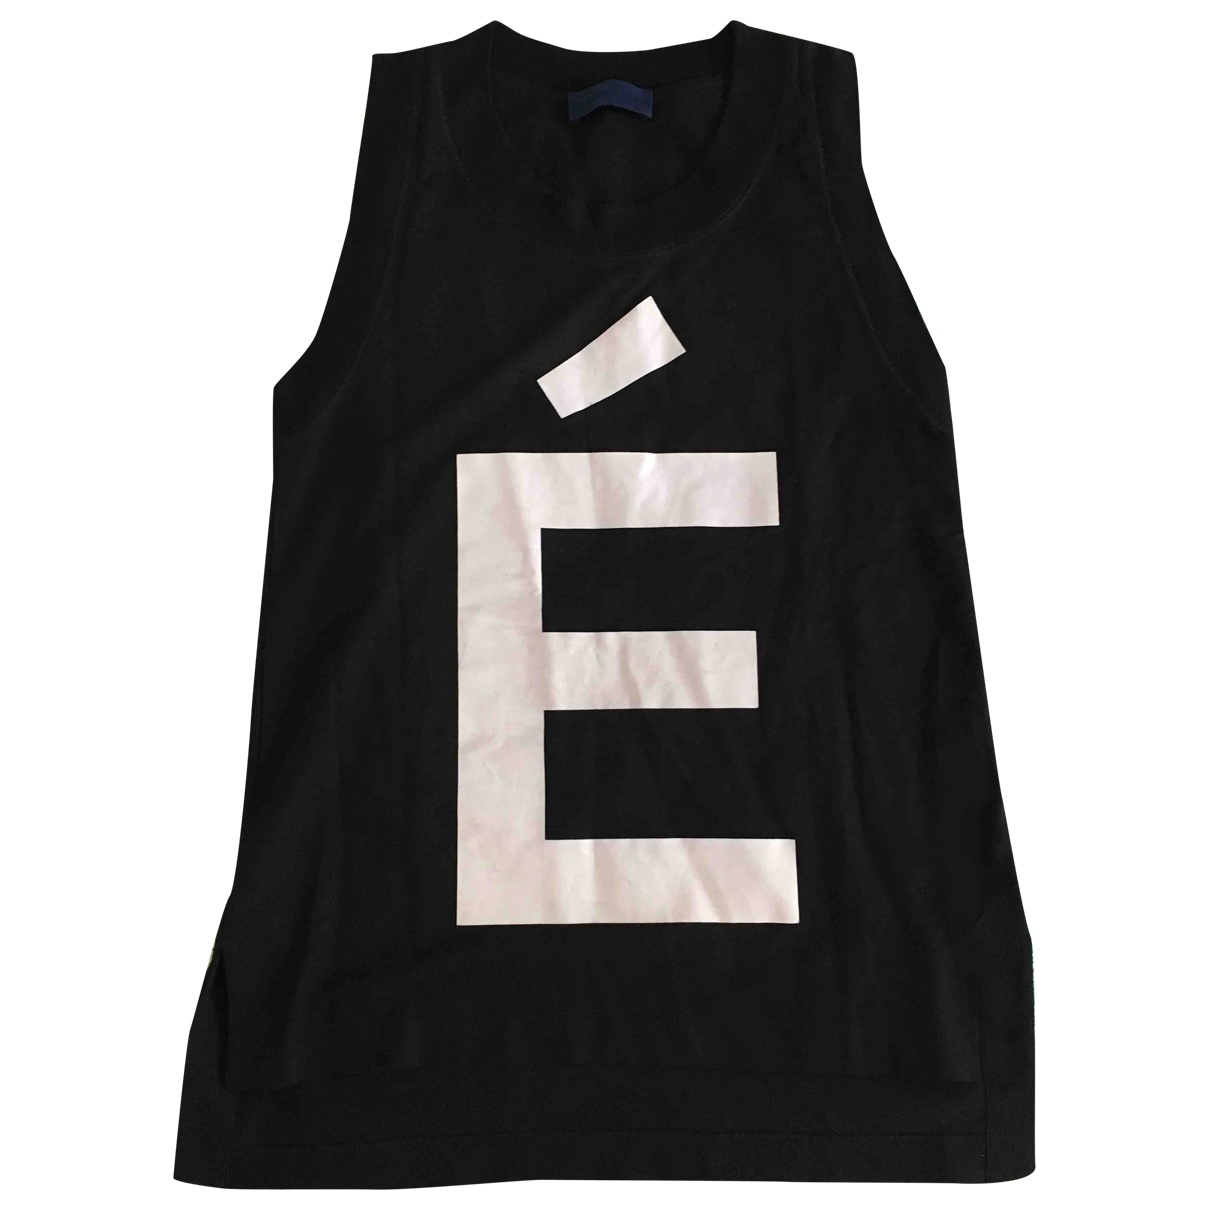 Études Studio \N Black Cotton T-shirts for Men S International